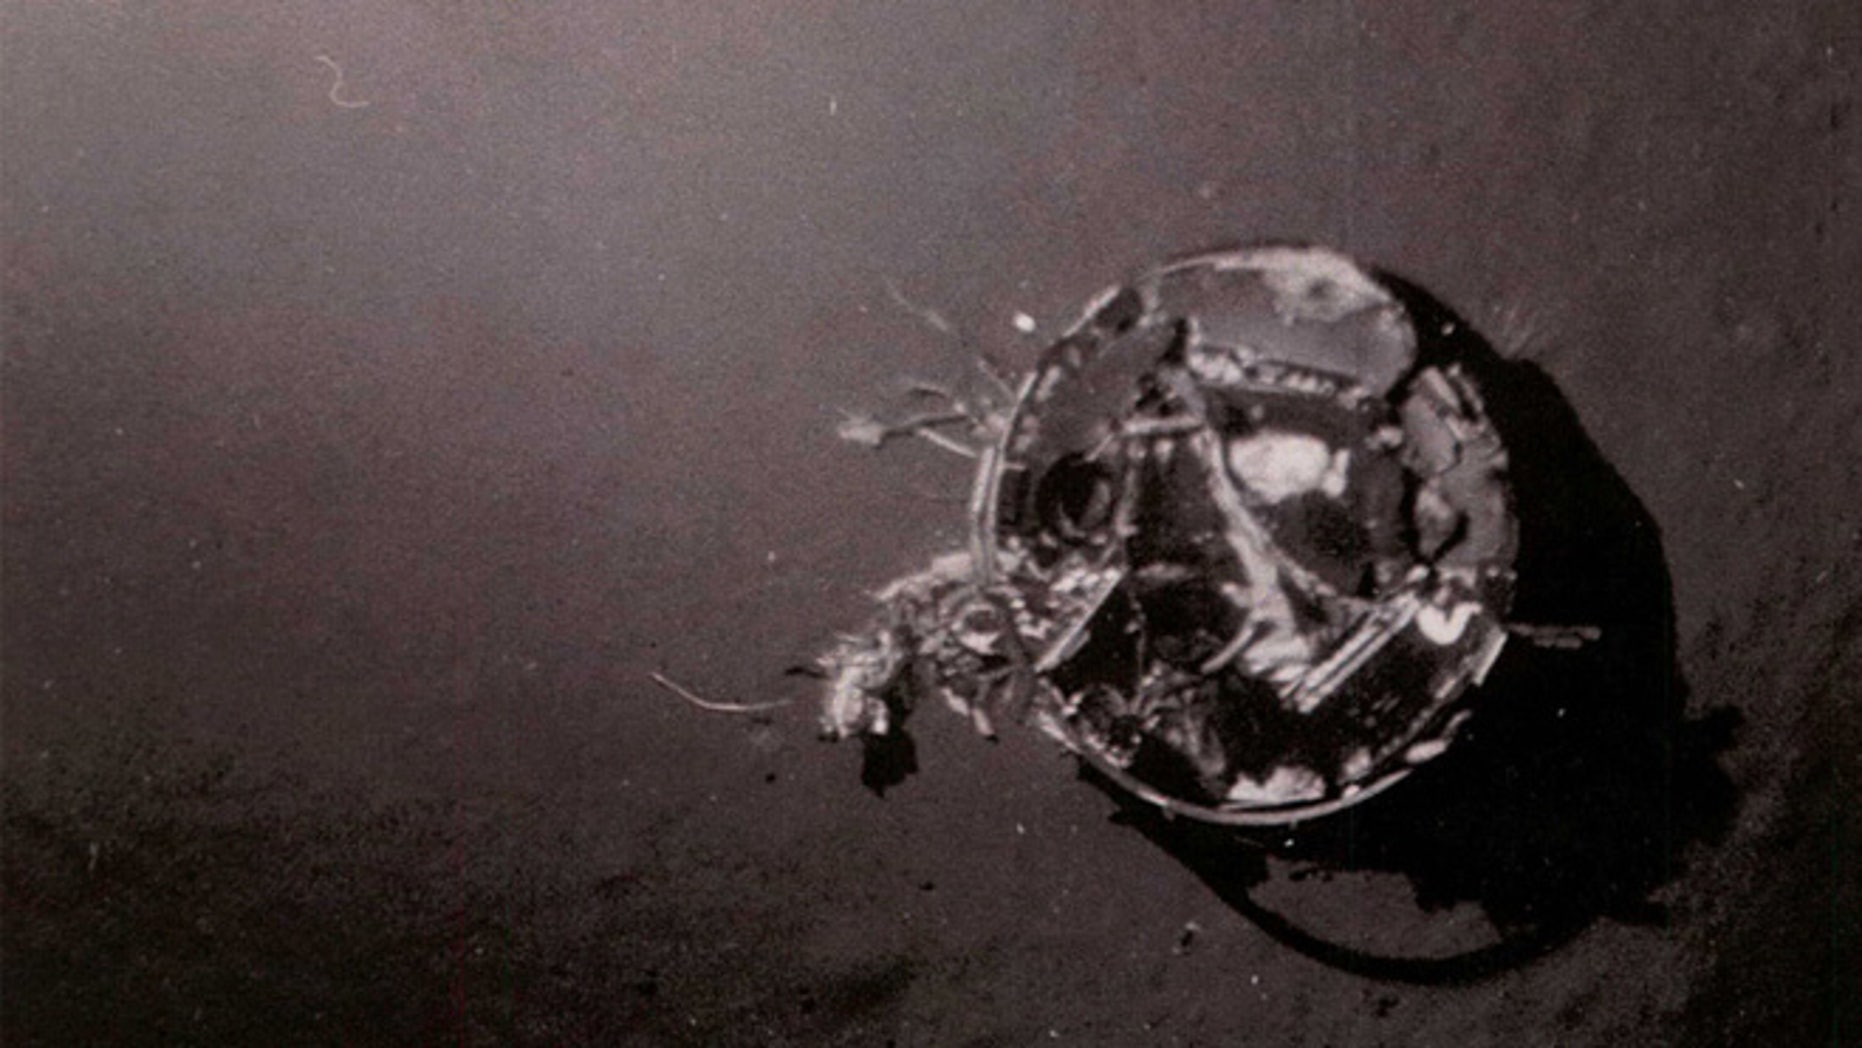 """According to the declassified CIA document, """"On 10 July 1971, the third HEXAGON RV was lost. The parachute failed to reef before fully deploying, and it was snapped off at the swivel. The RV entered ballistically and impacted the water with a force of approximately 2600 g's and settled in 16,000 feet of water."""""""